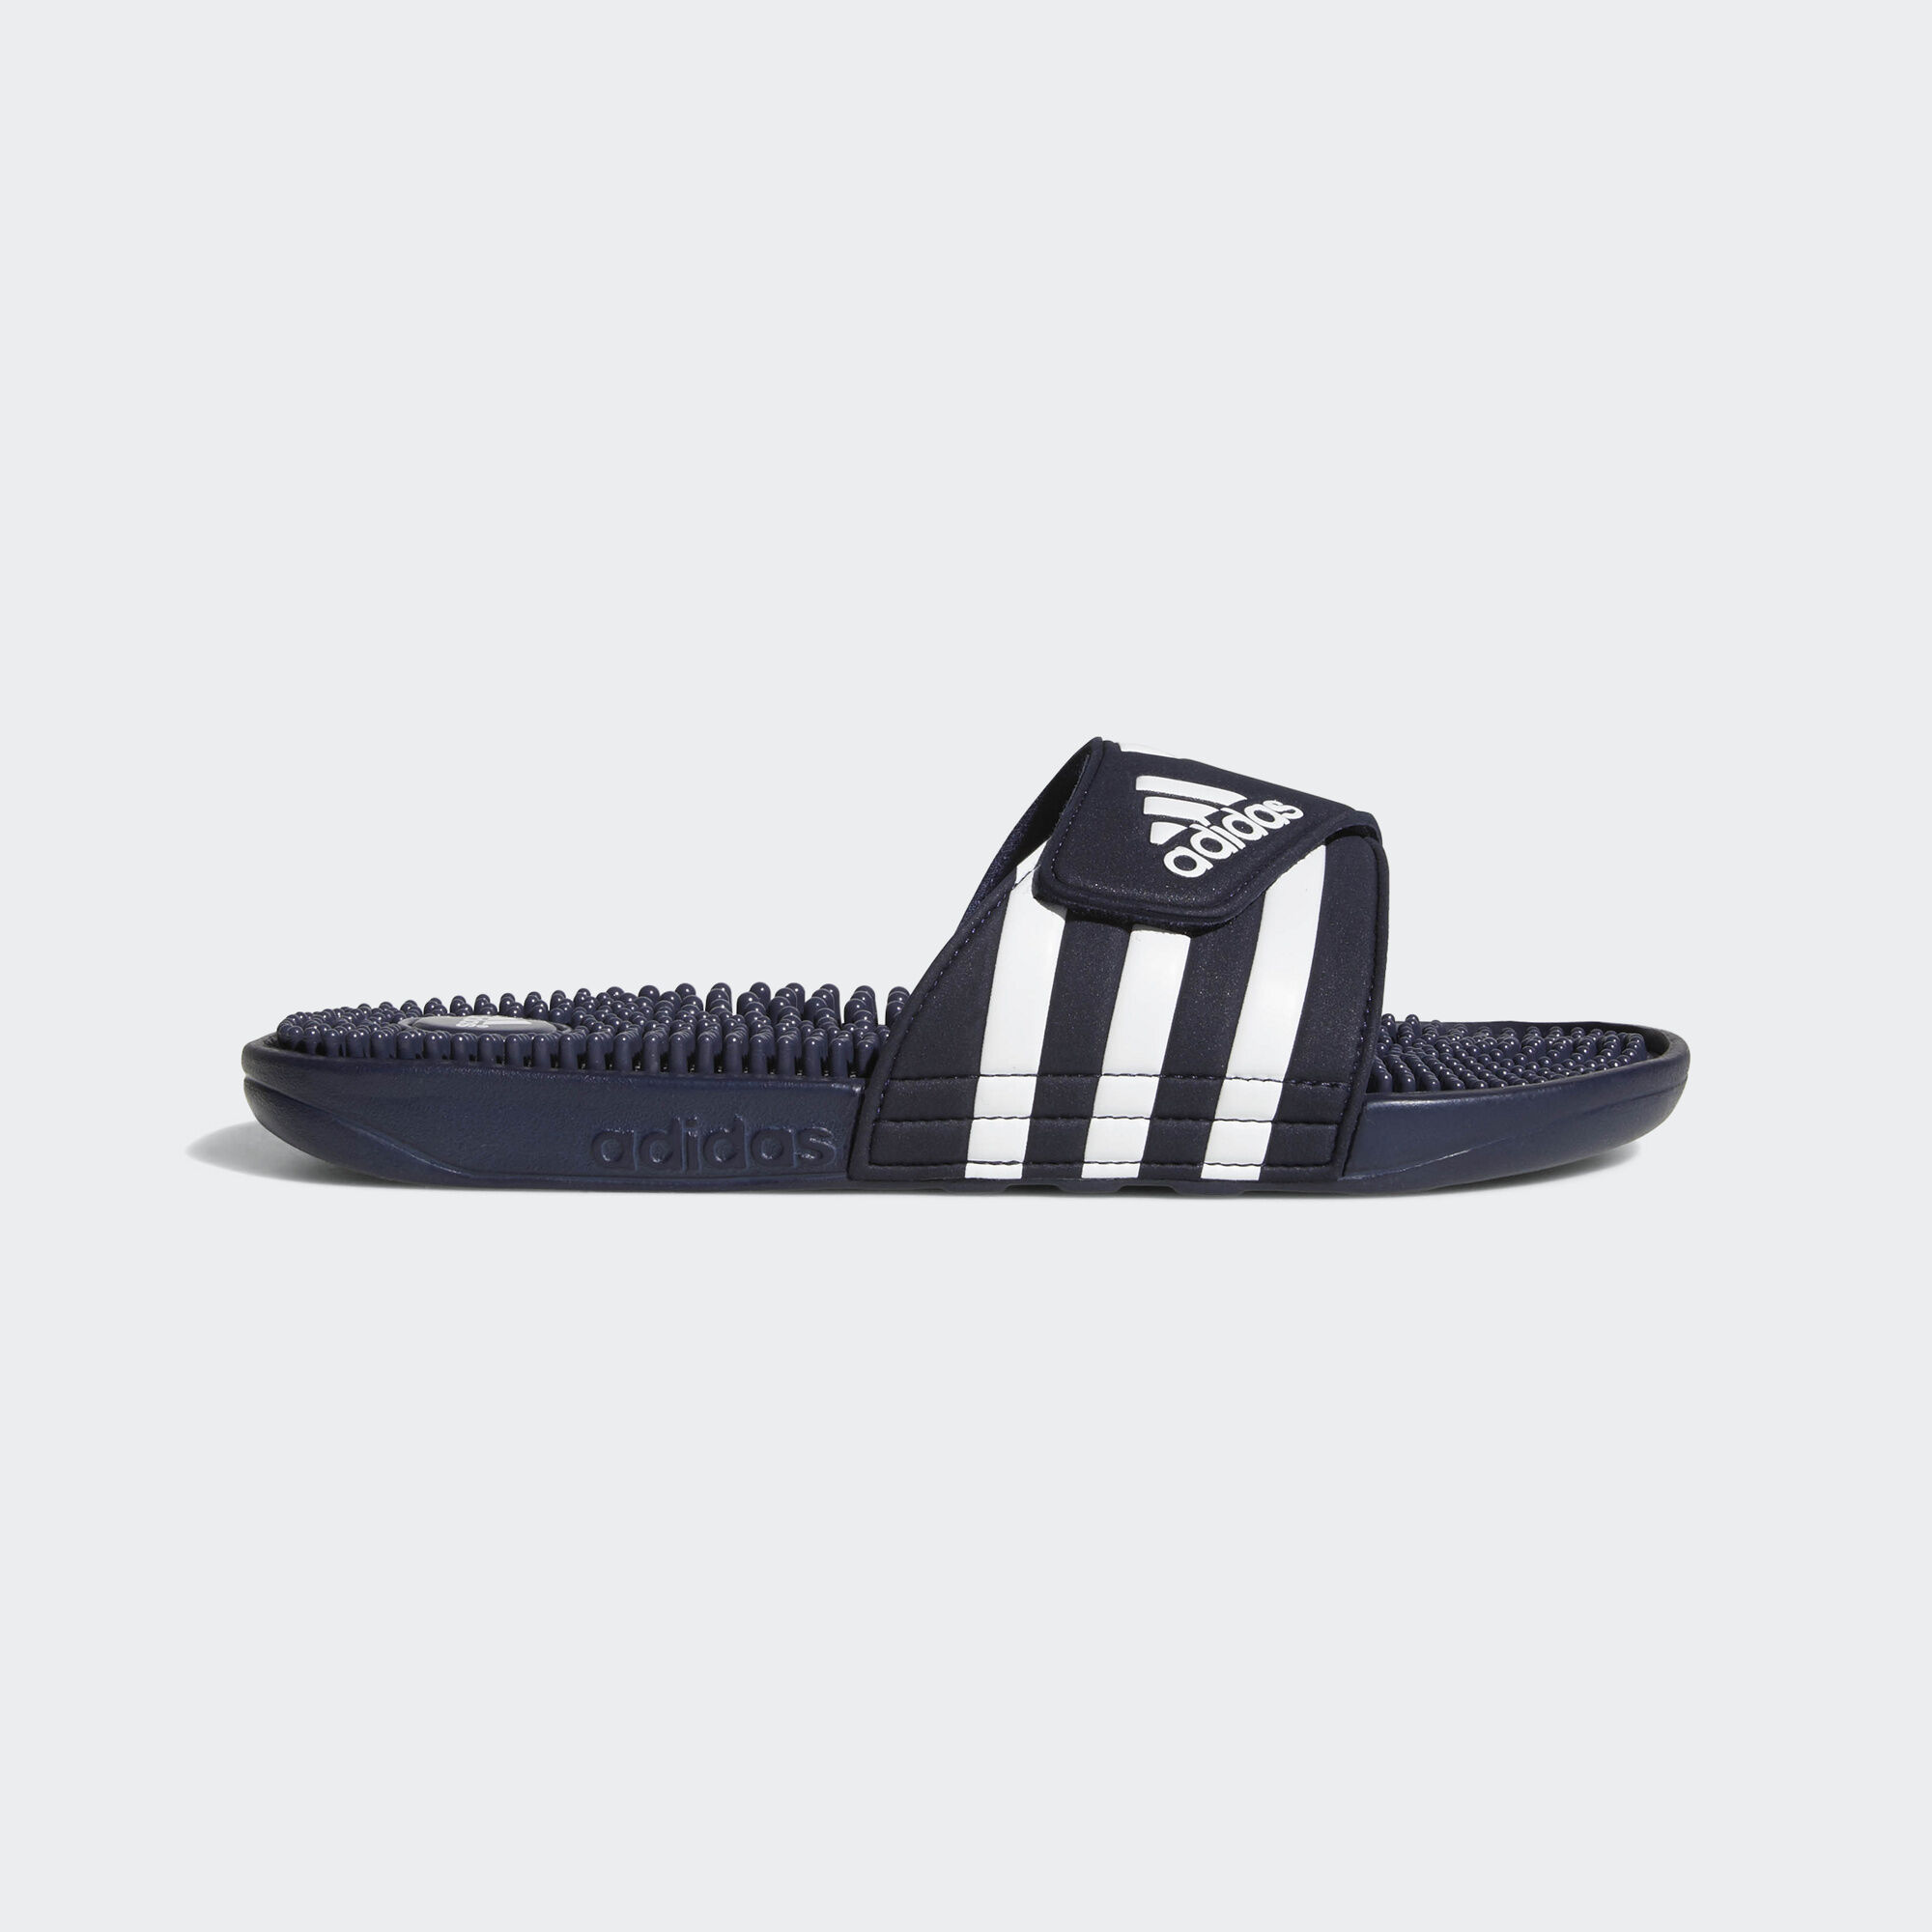 Buy adidas acupuncture slippers >off46%)